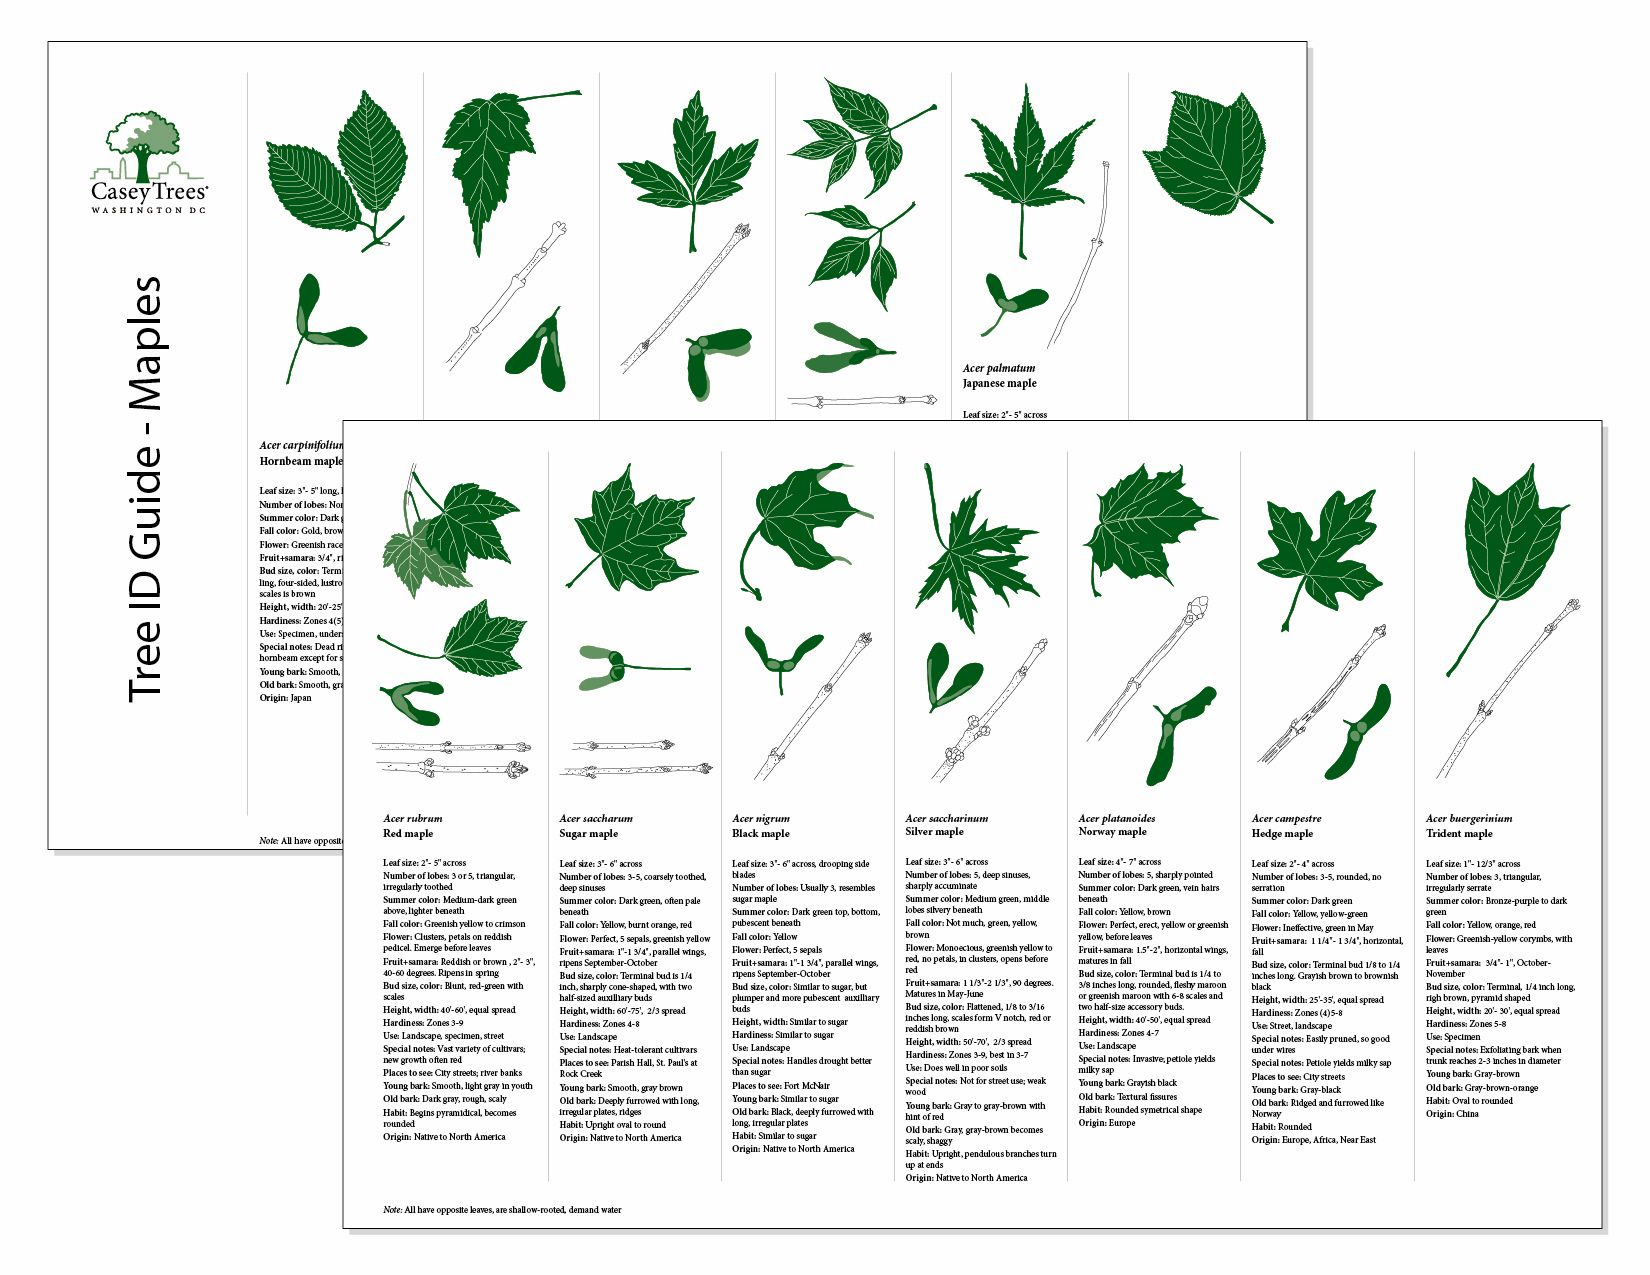 Tree Bark Identification Chart